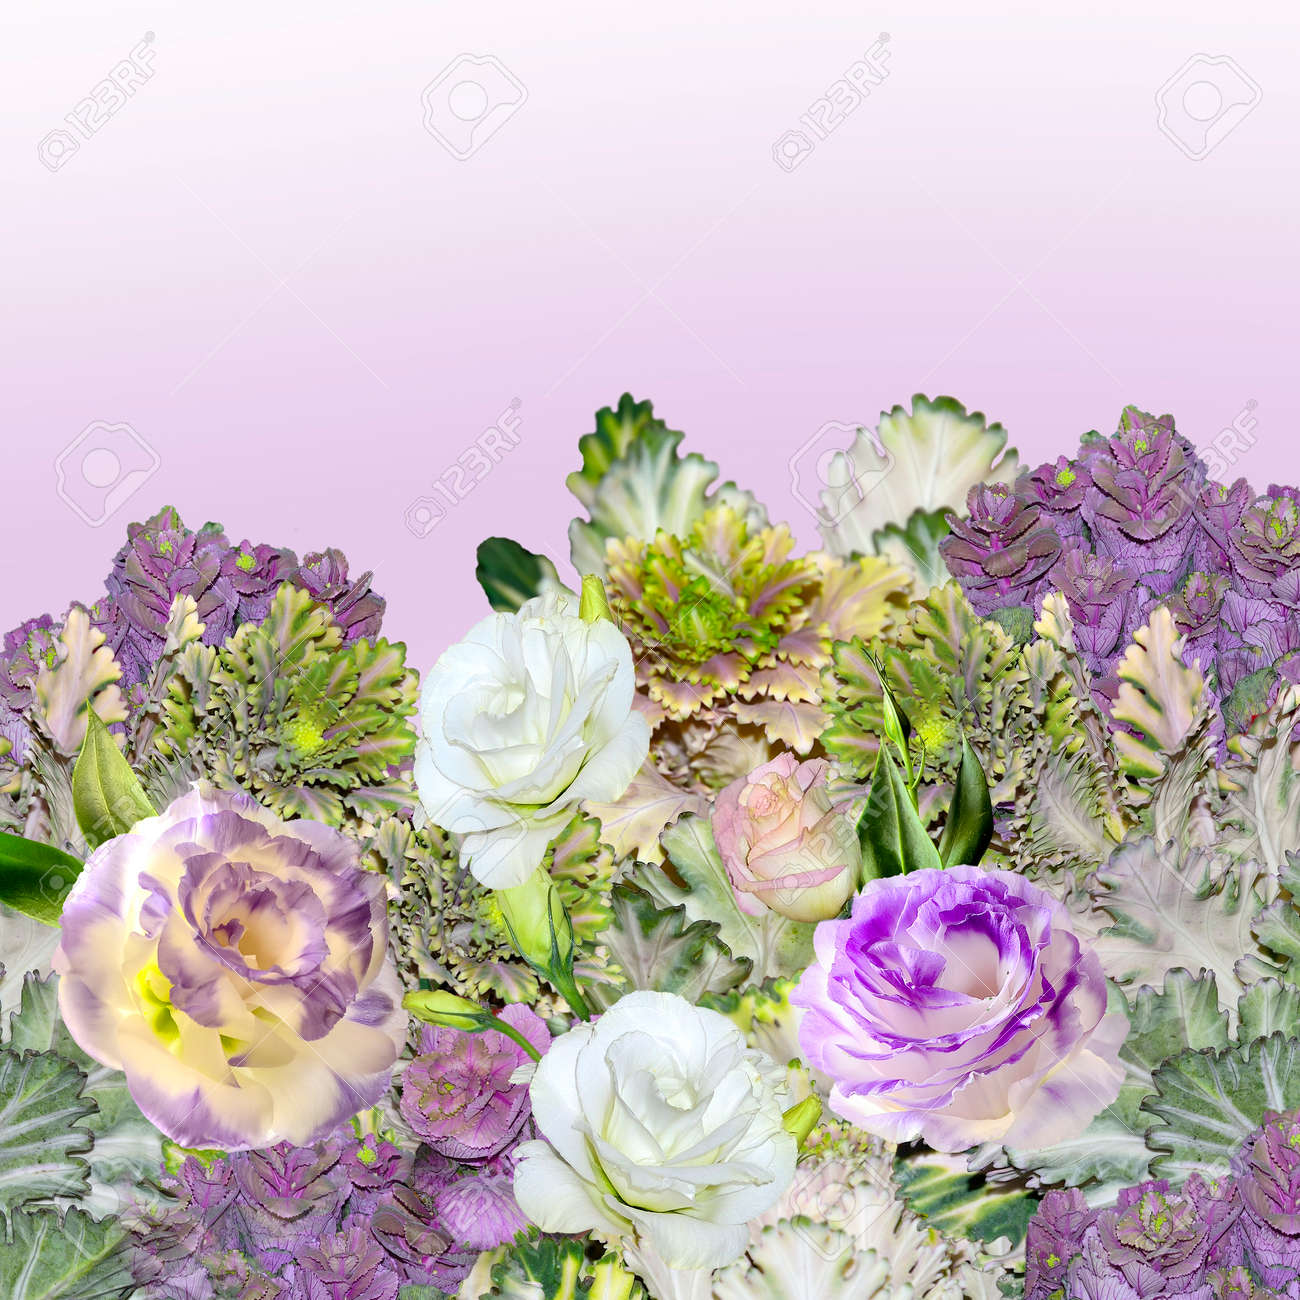 Floral border with bouquet of purple with white eustoma lisianthus floral border with bouquet of purple with white eustoma lisianthus flowers and ornamental cabbage altavistaventures Choice Image